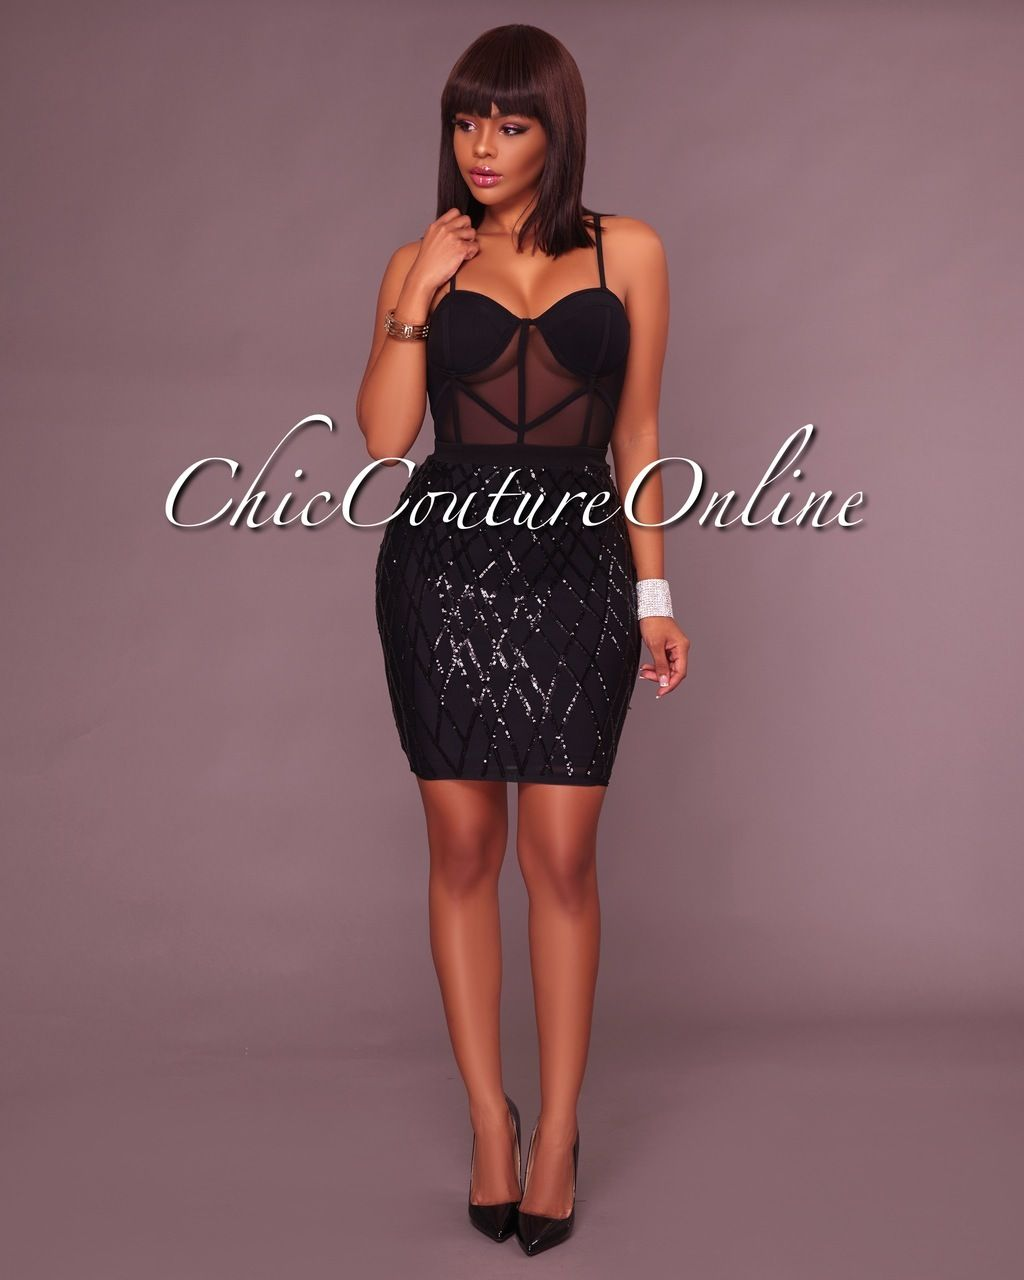 Chic Couture Online - Gerry Black Sequin Mesh Dress, (http://www ...